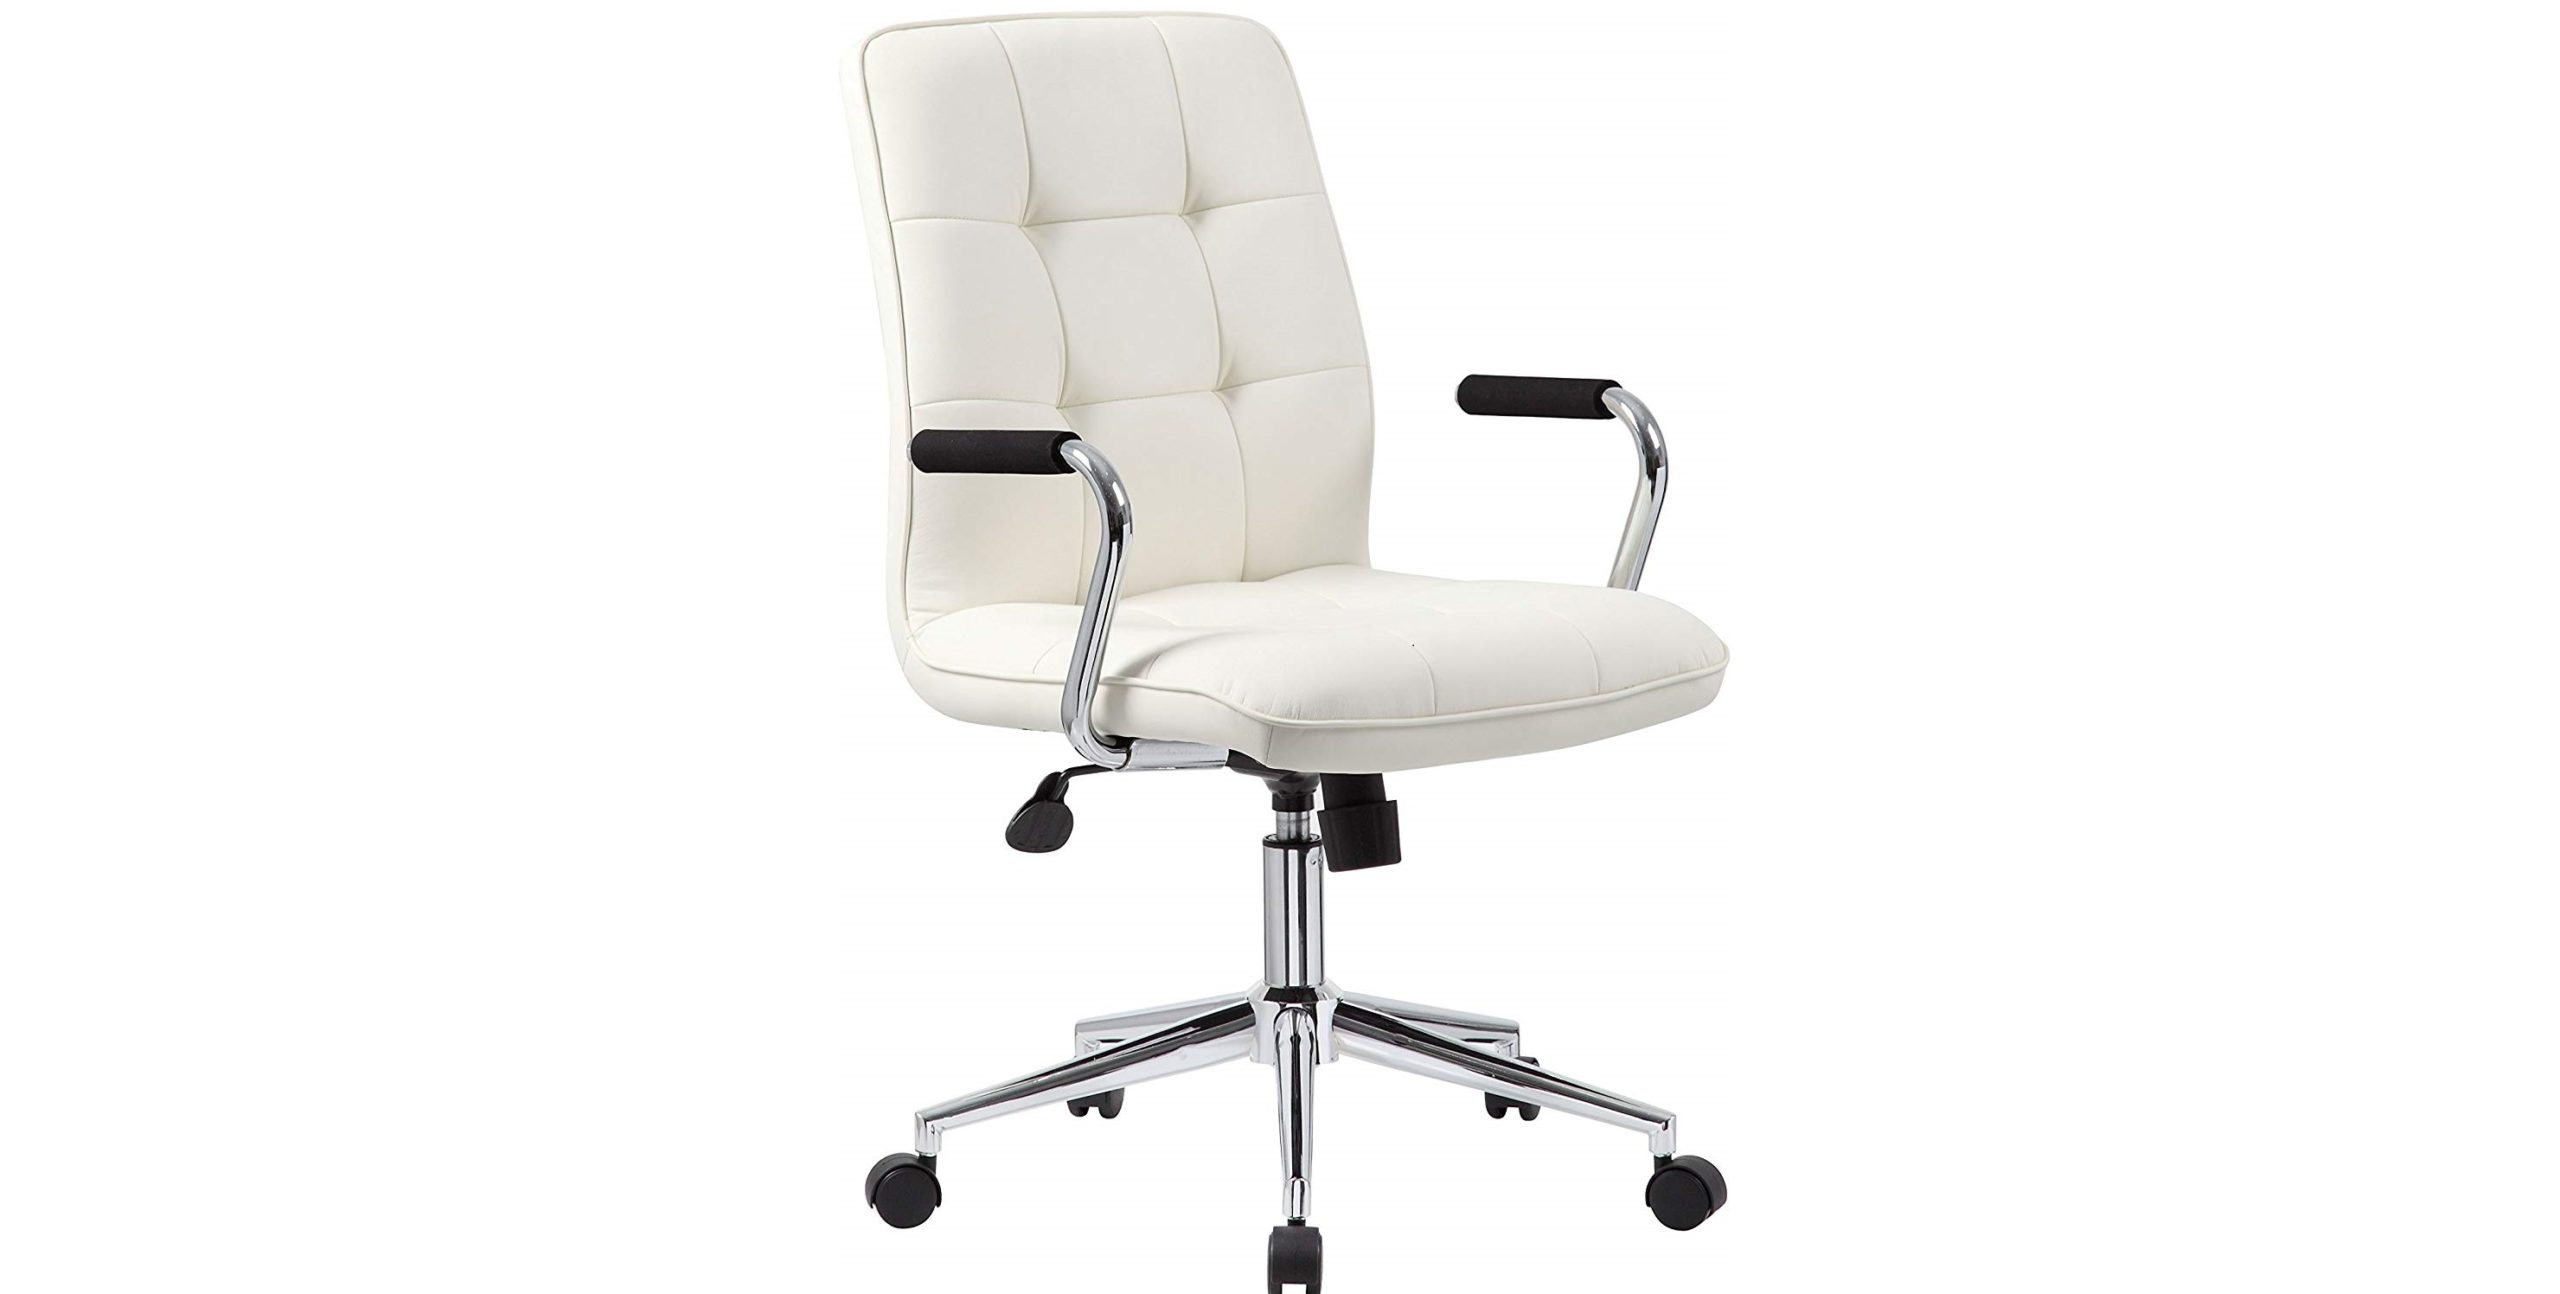 TOP 5 BEST OFFICE CHAIRS UNDER $200 IN 2020 REVIEWS